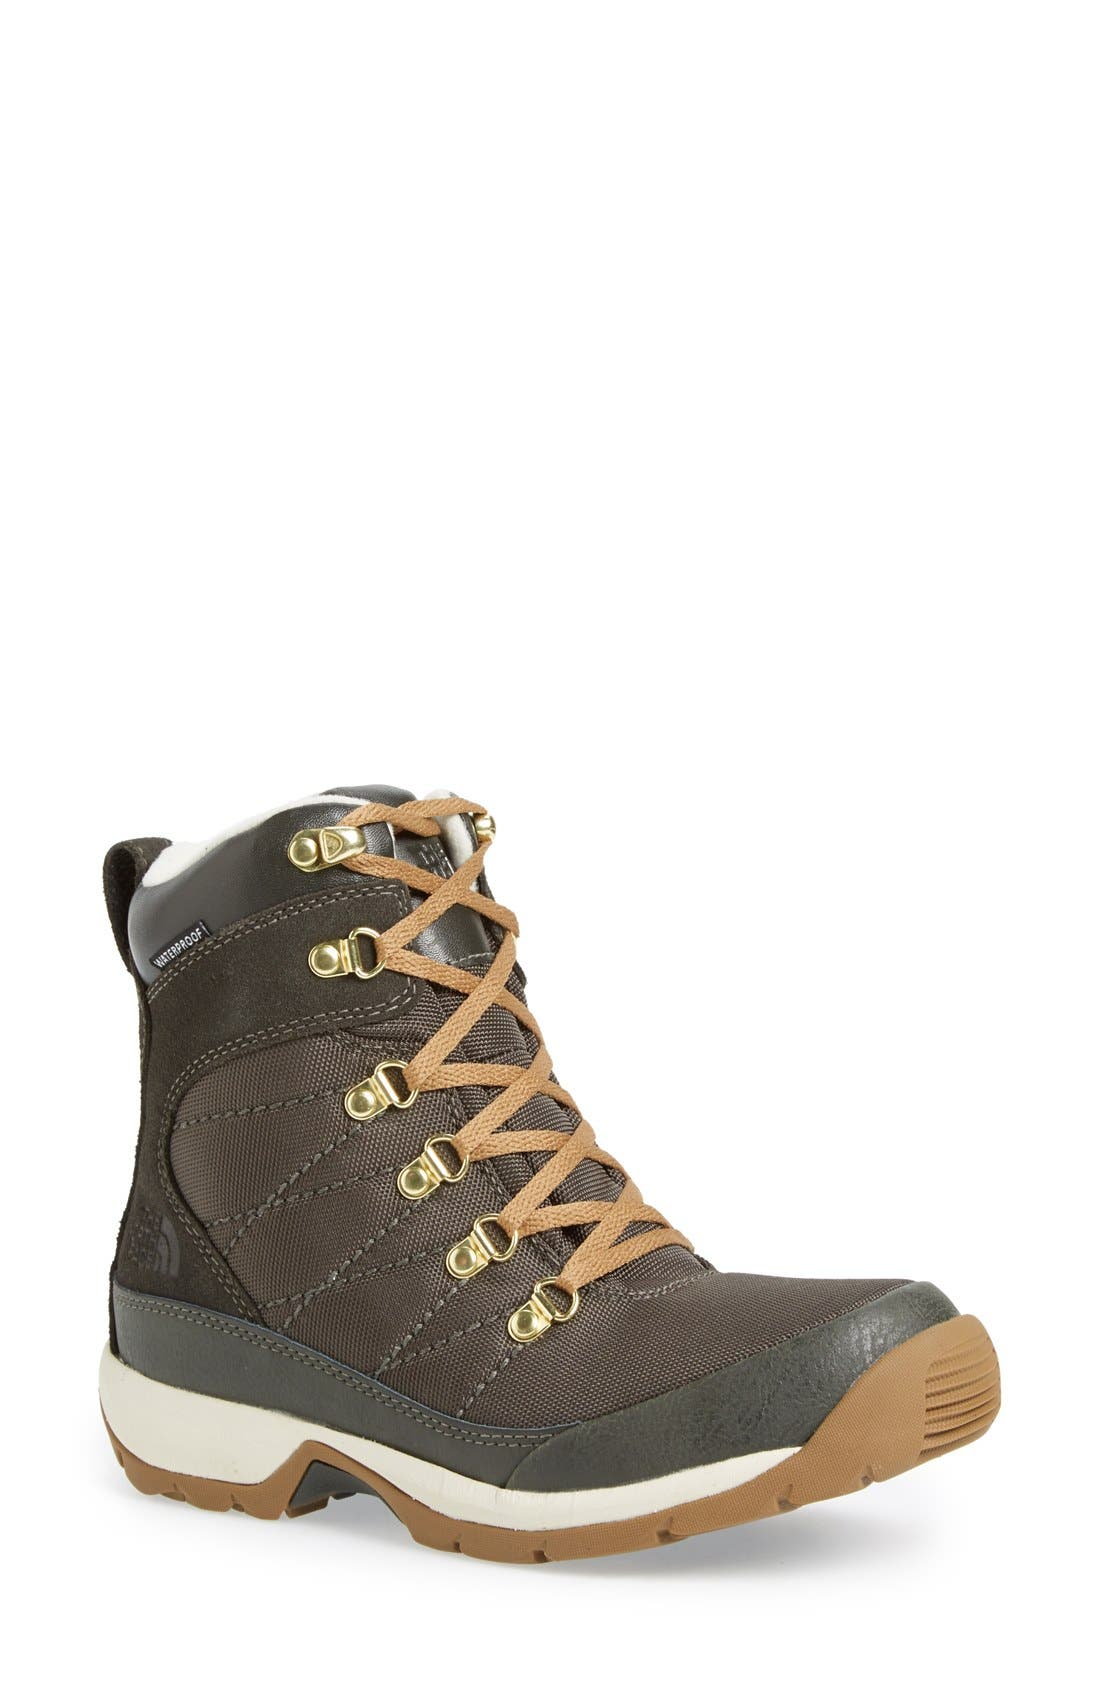 Alternate Image 1 Selected - The North Face 'Chilkat II' Boot